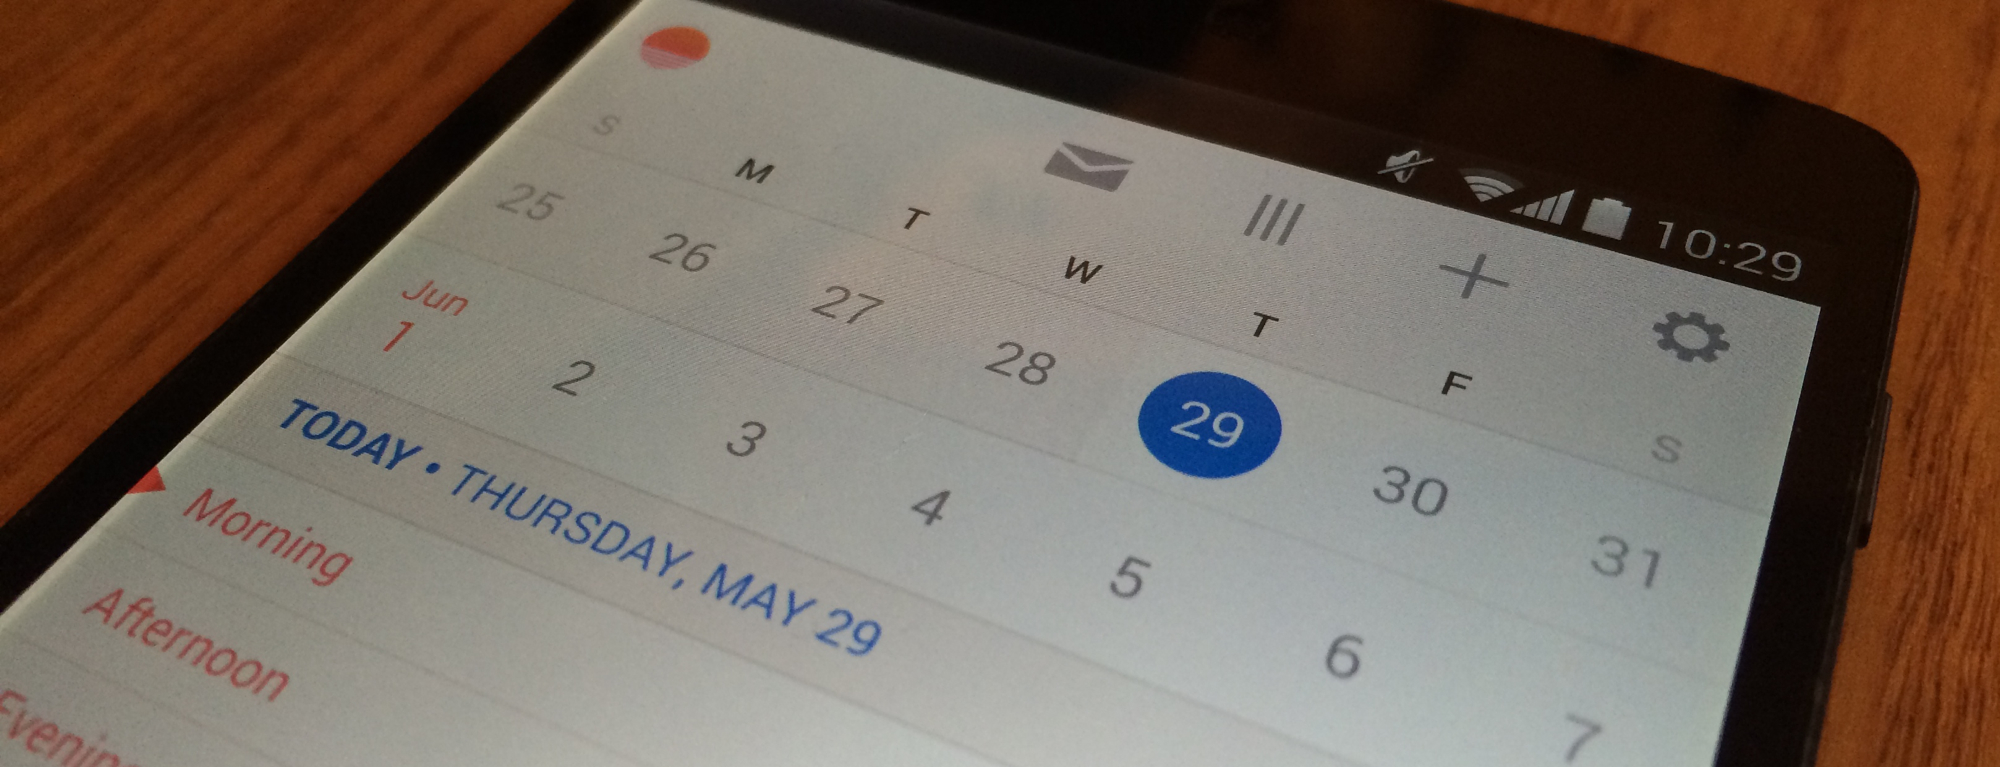 Calendar App Sunrise Hits Android, Chrome and the Web